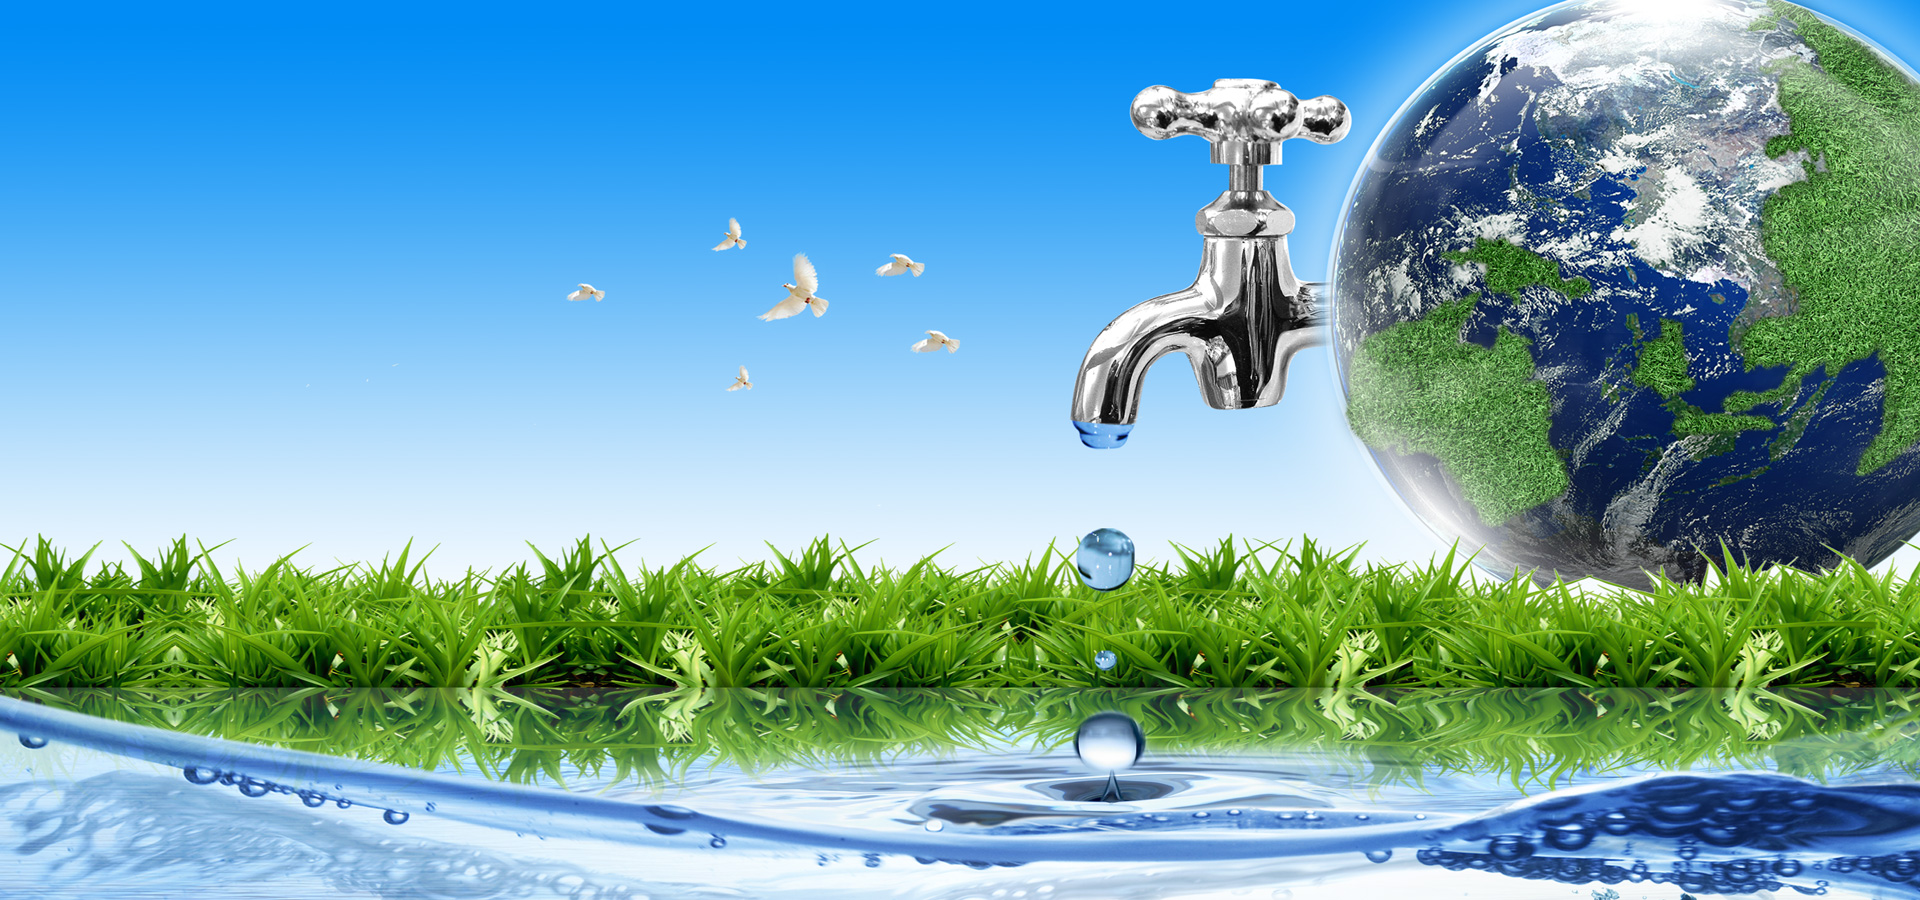 water conservation background  earth  faucet  meadow background image for free download